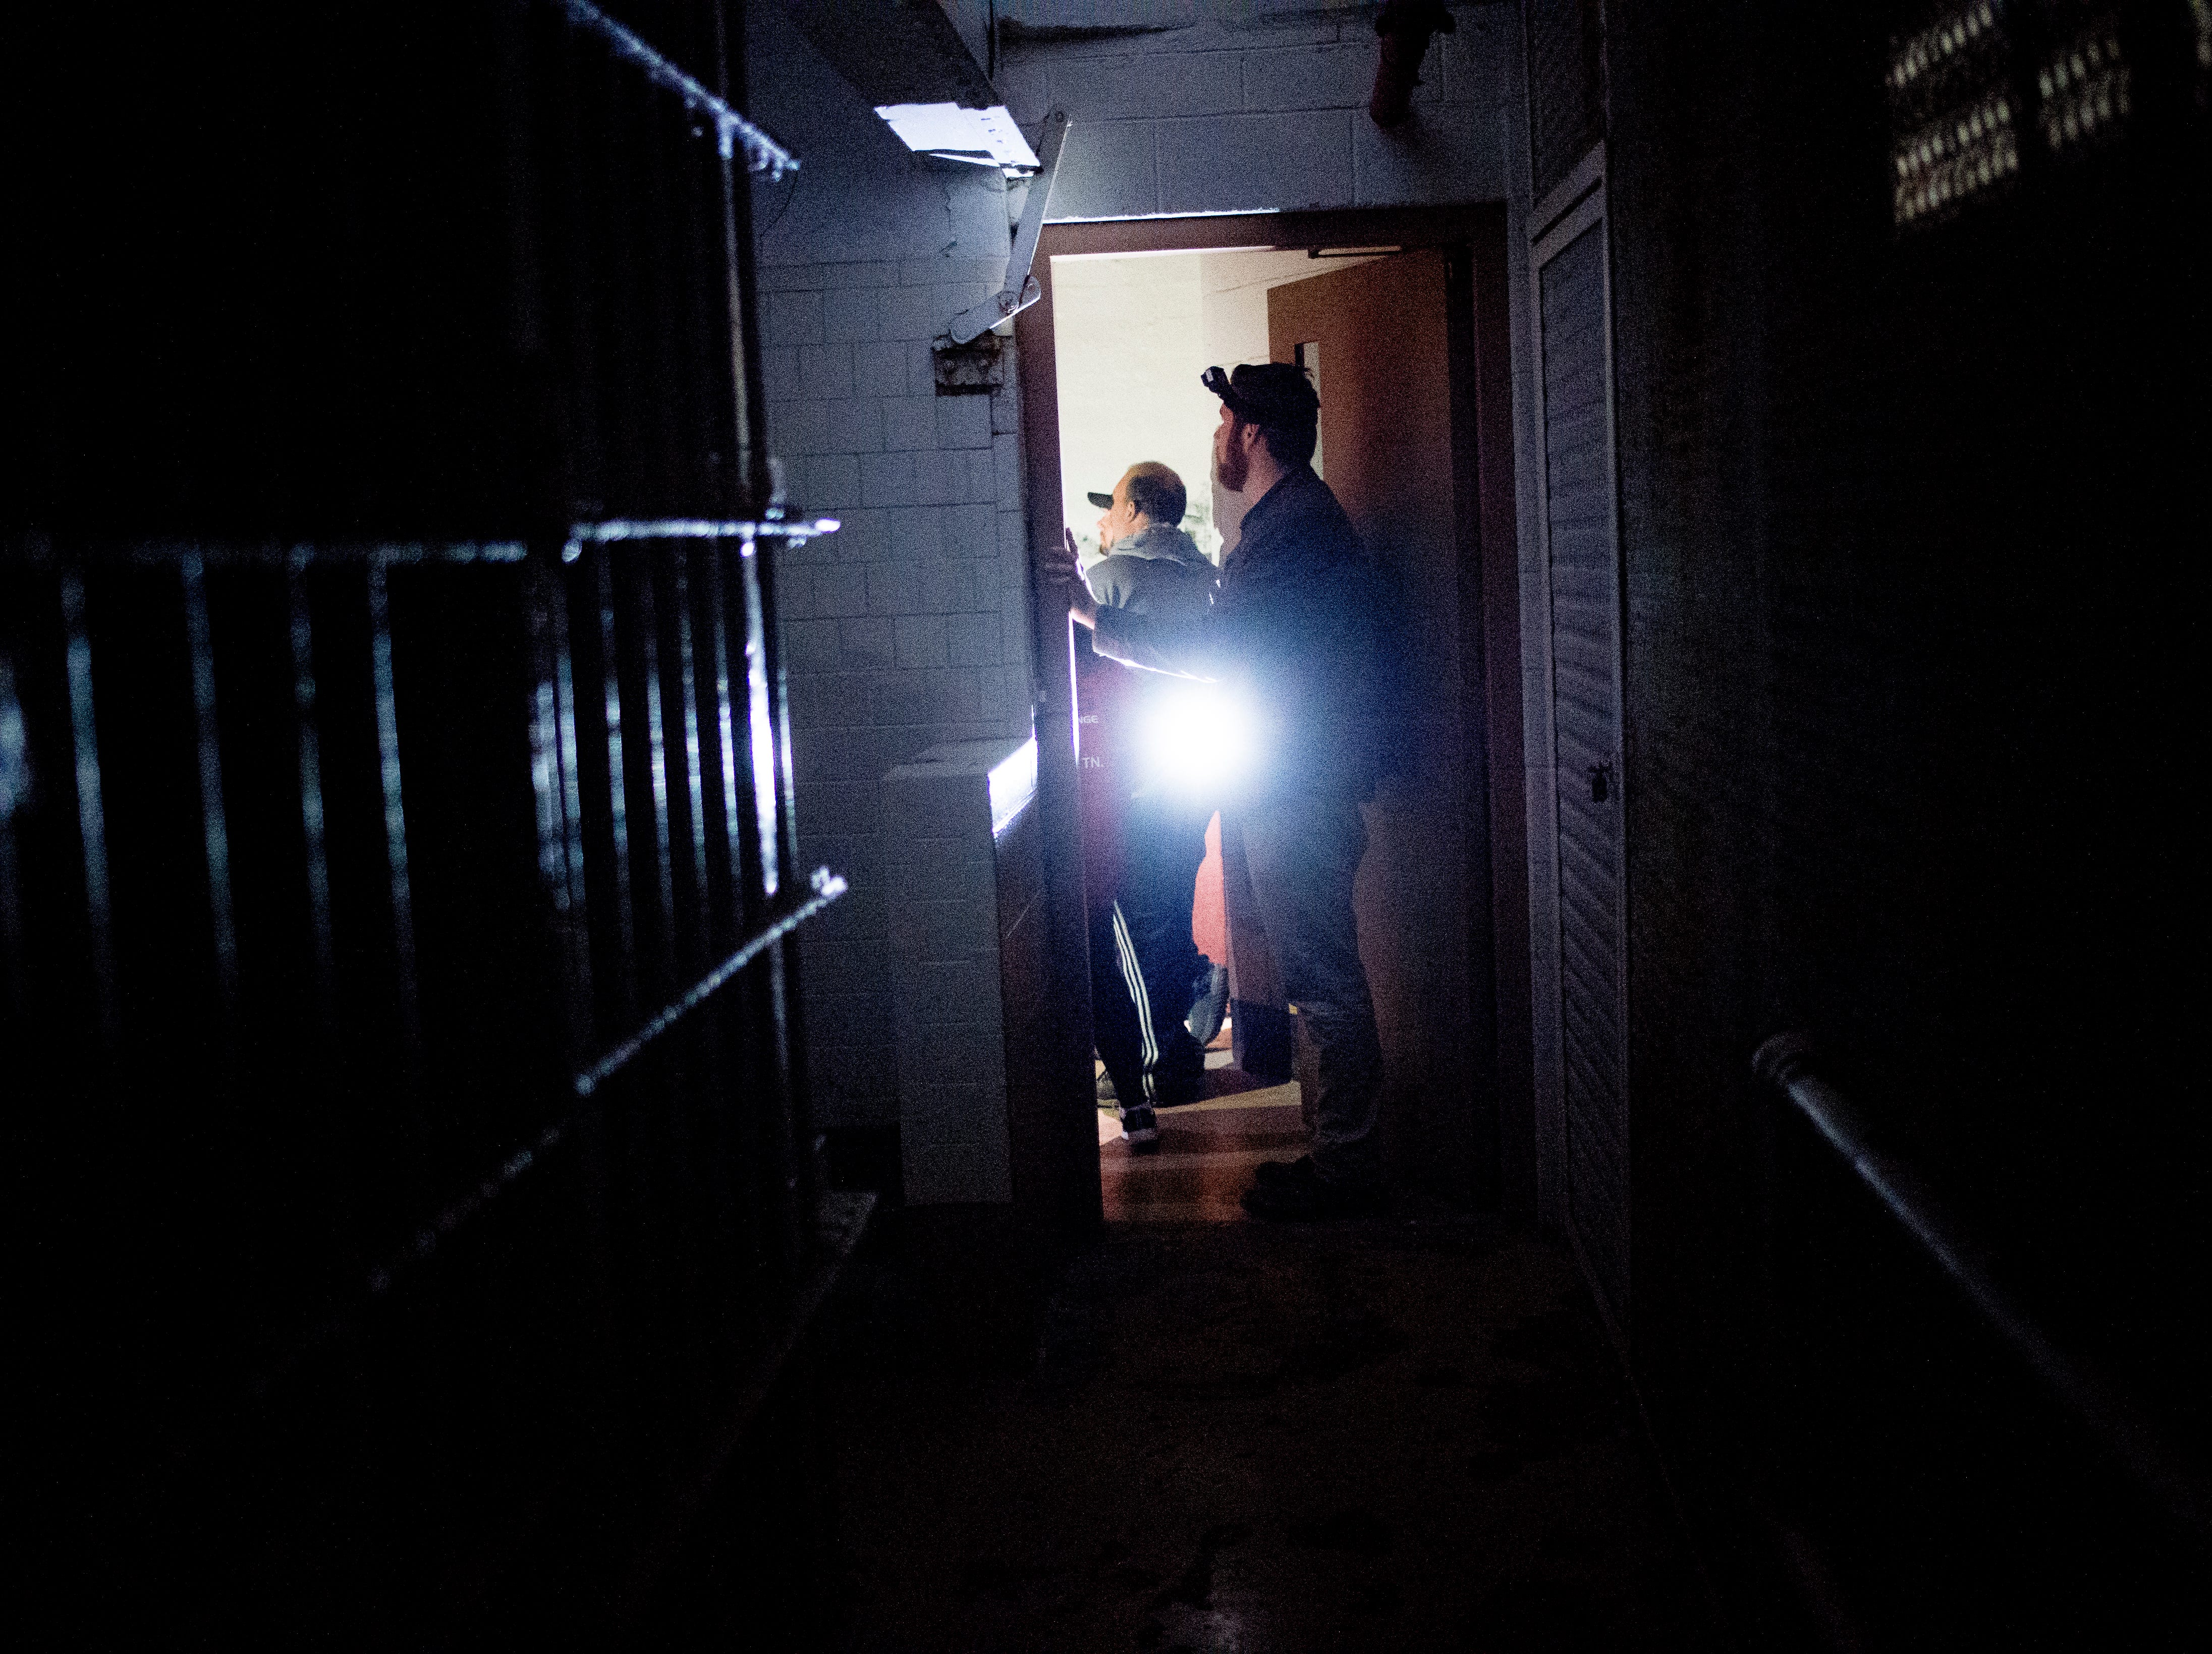 News Sentinel reporter Ryan Wilusz walks through a cell block during a paranormal flashlight tour of Brushy Mountain State Penitentiary in Petros, Tennessee on Tuesday, October 16, 2018.